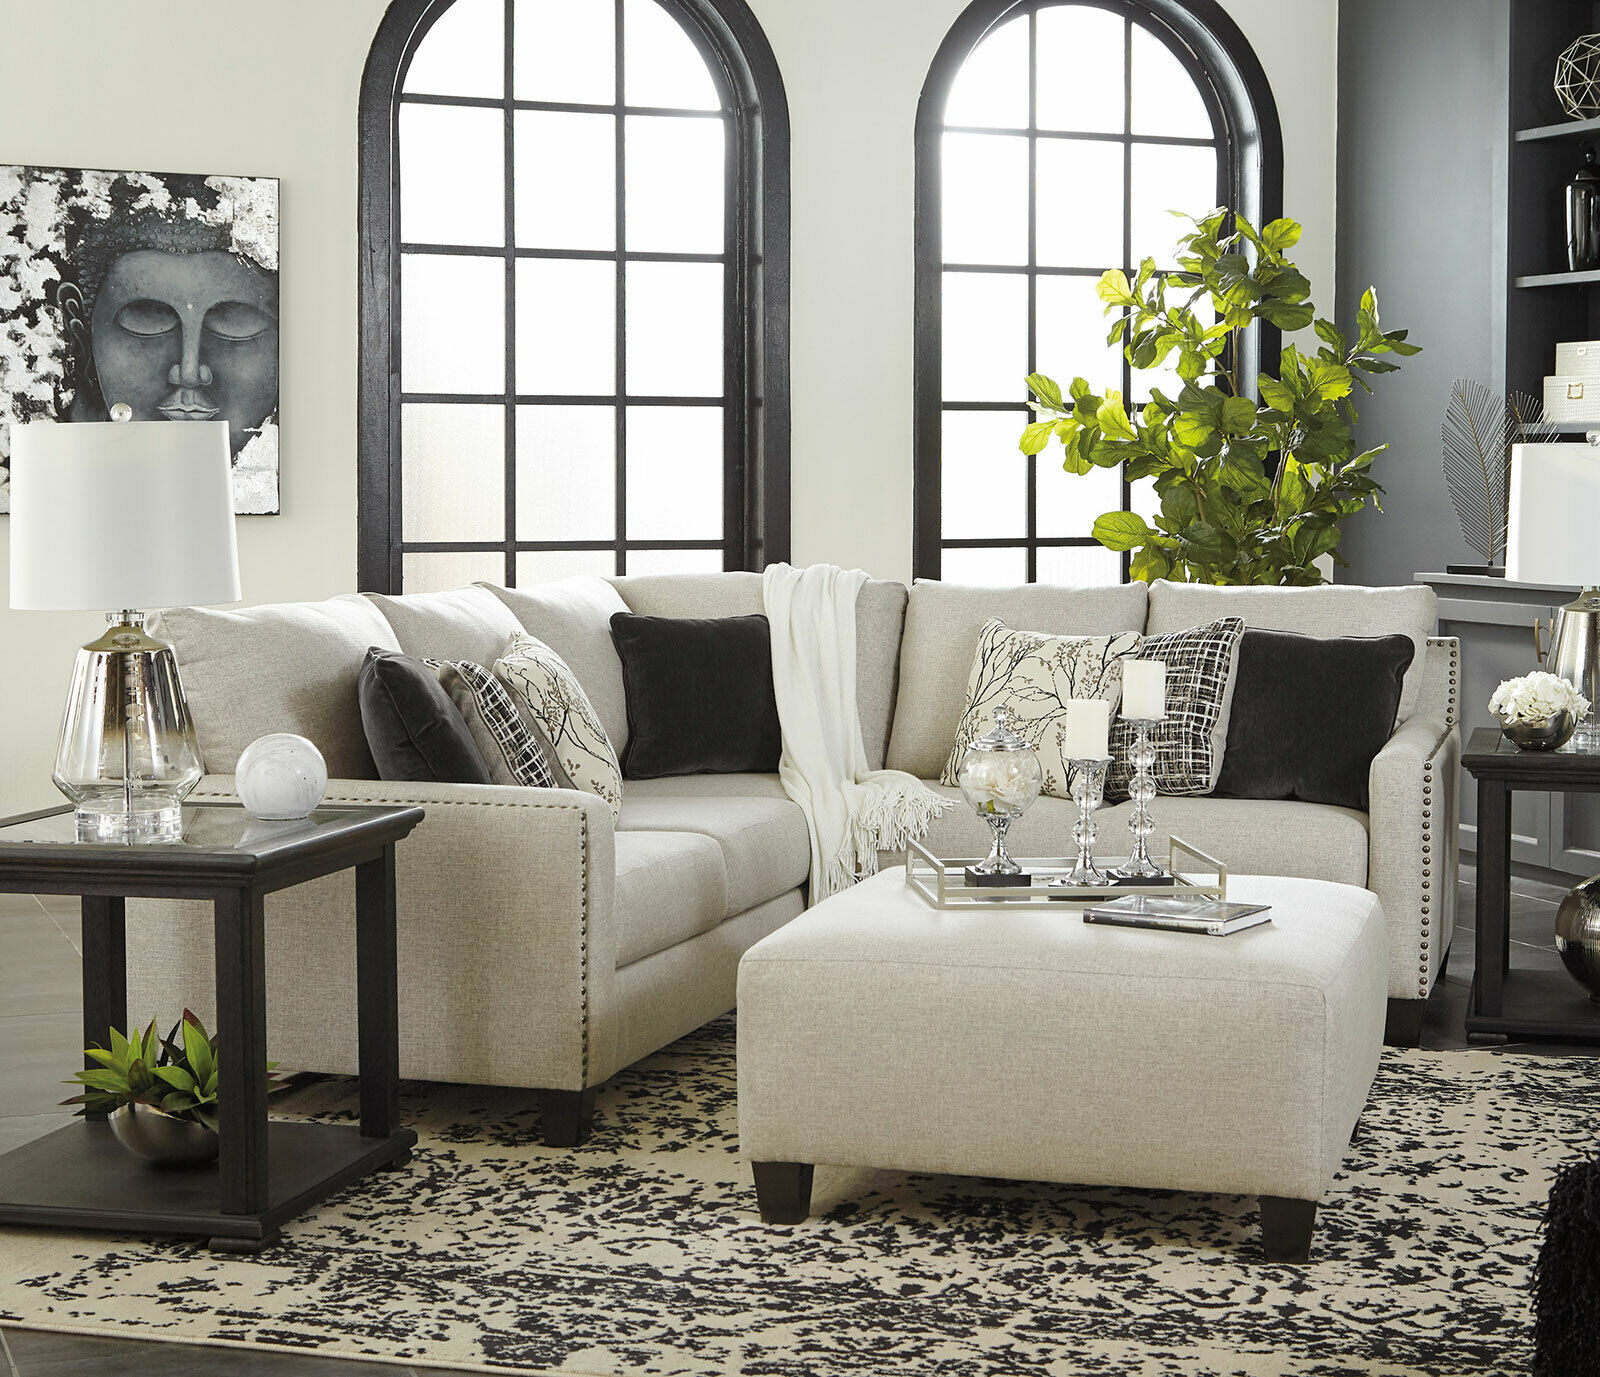 Rene Modern Style Sectional With Ottomansfurniturestorelosangeles.com · In stock